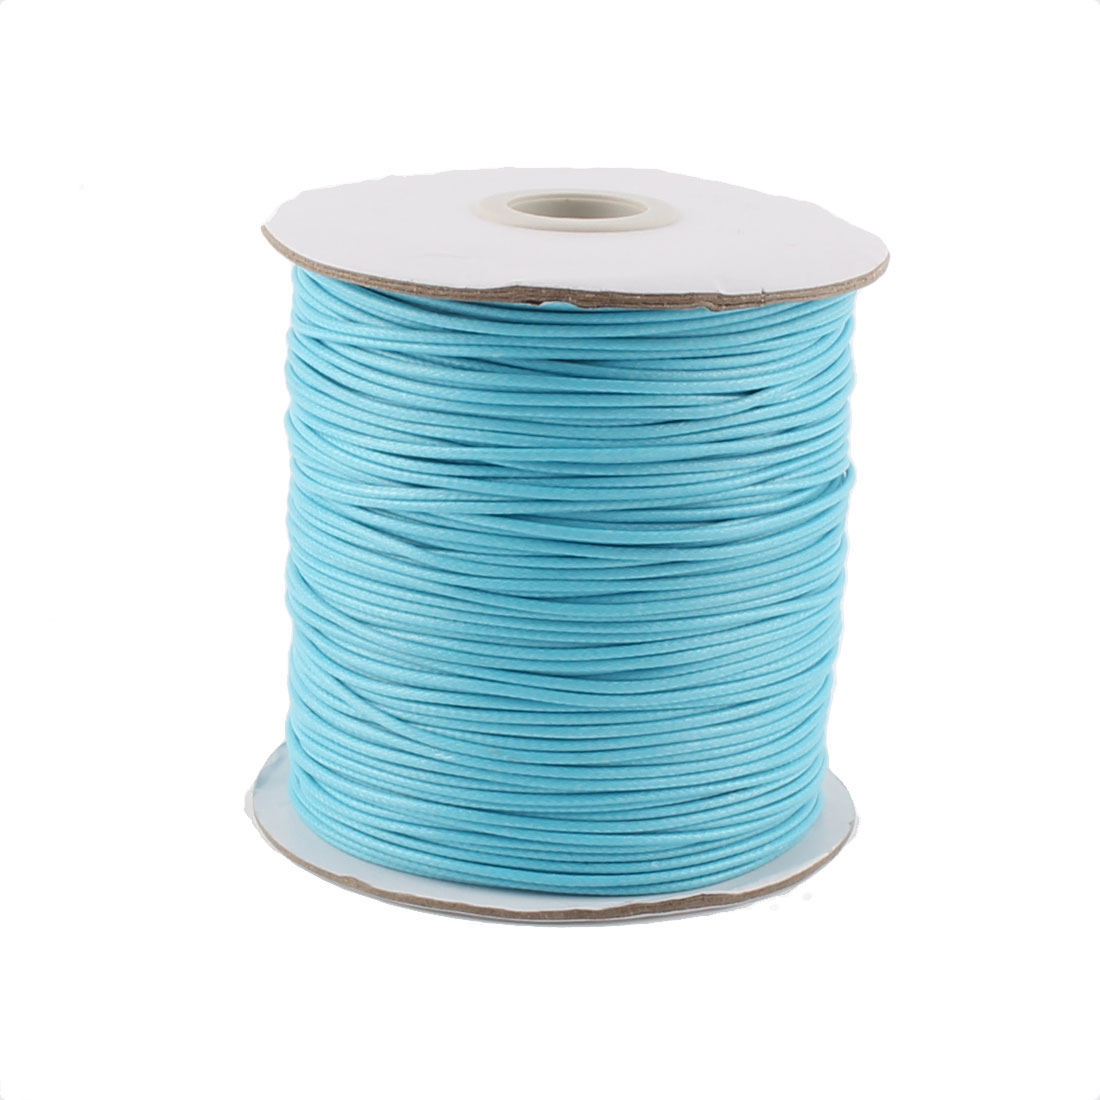 Cotton Waxed Making String Beading Thread Cord Roll Blue 190 Yard for Beads Jewelry